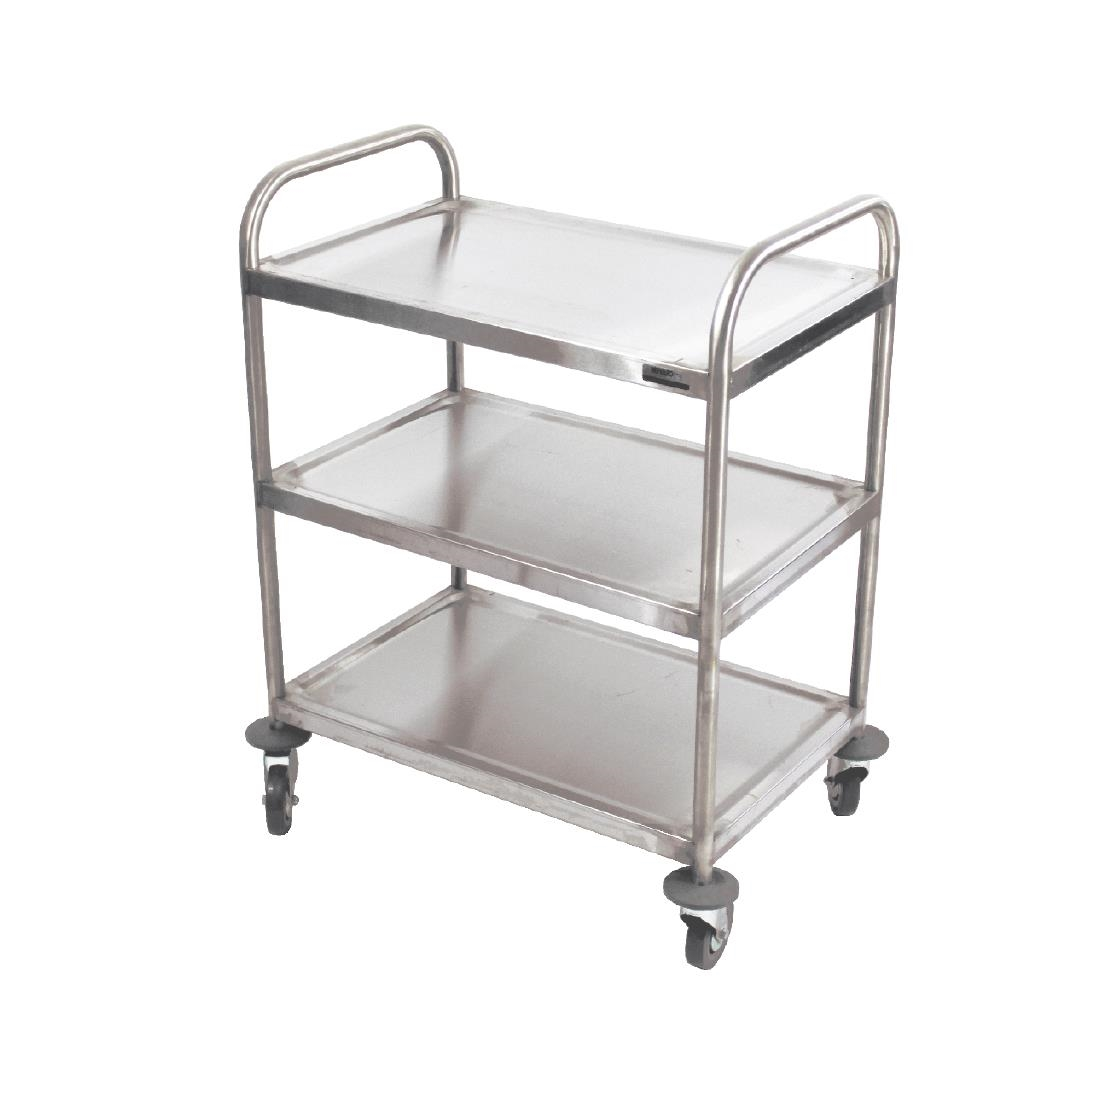 Image of Craven 3 Tier Undercounter Serving Trolley